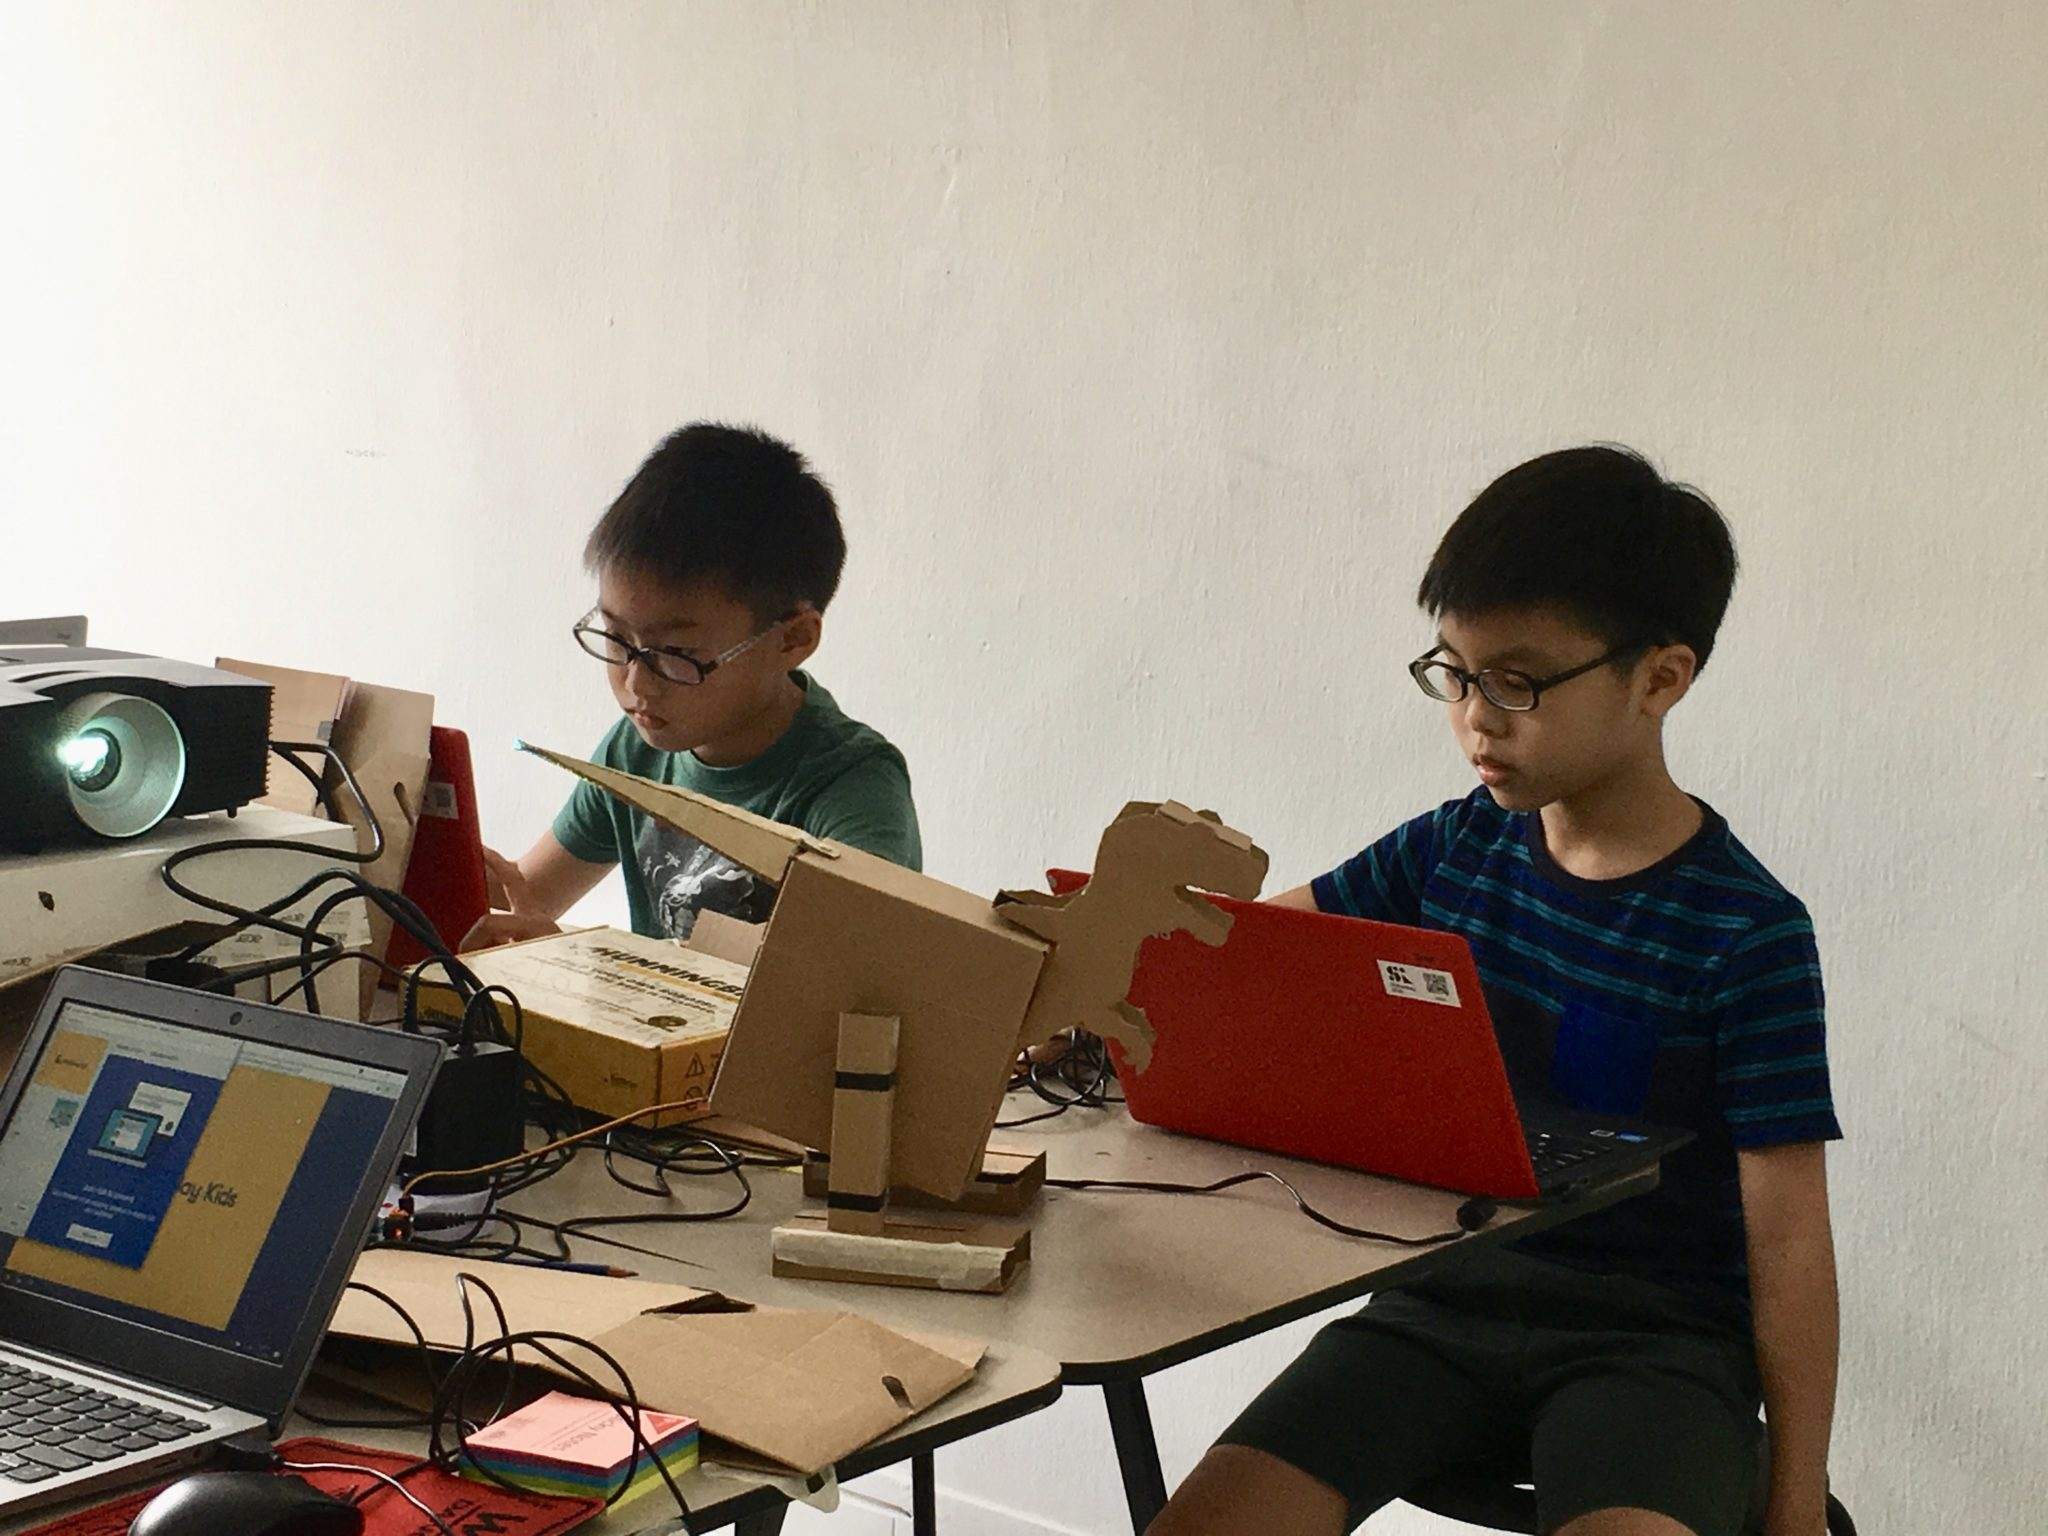 Parent Perspectives: Why I Sent my Son to Weekly Coding Classes